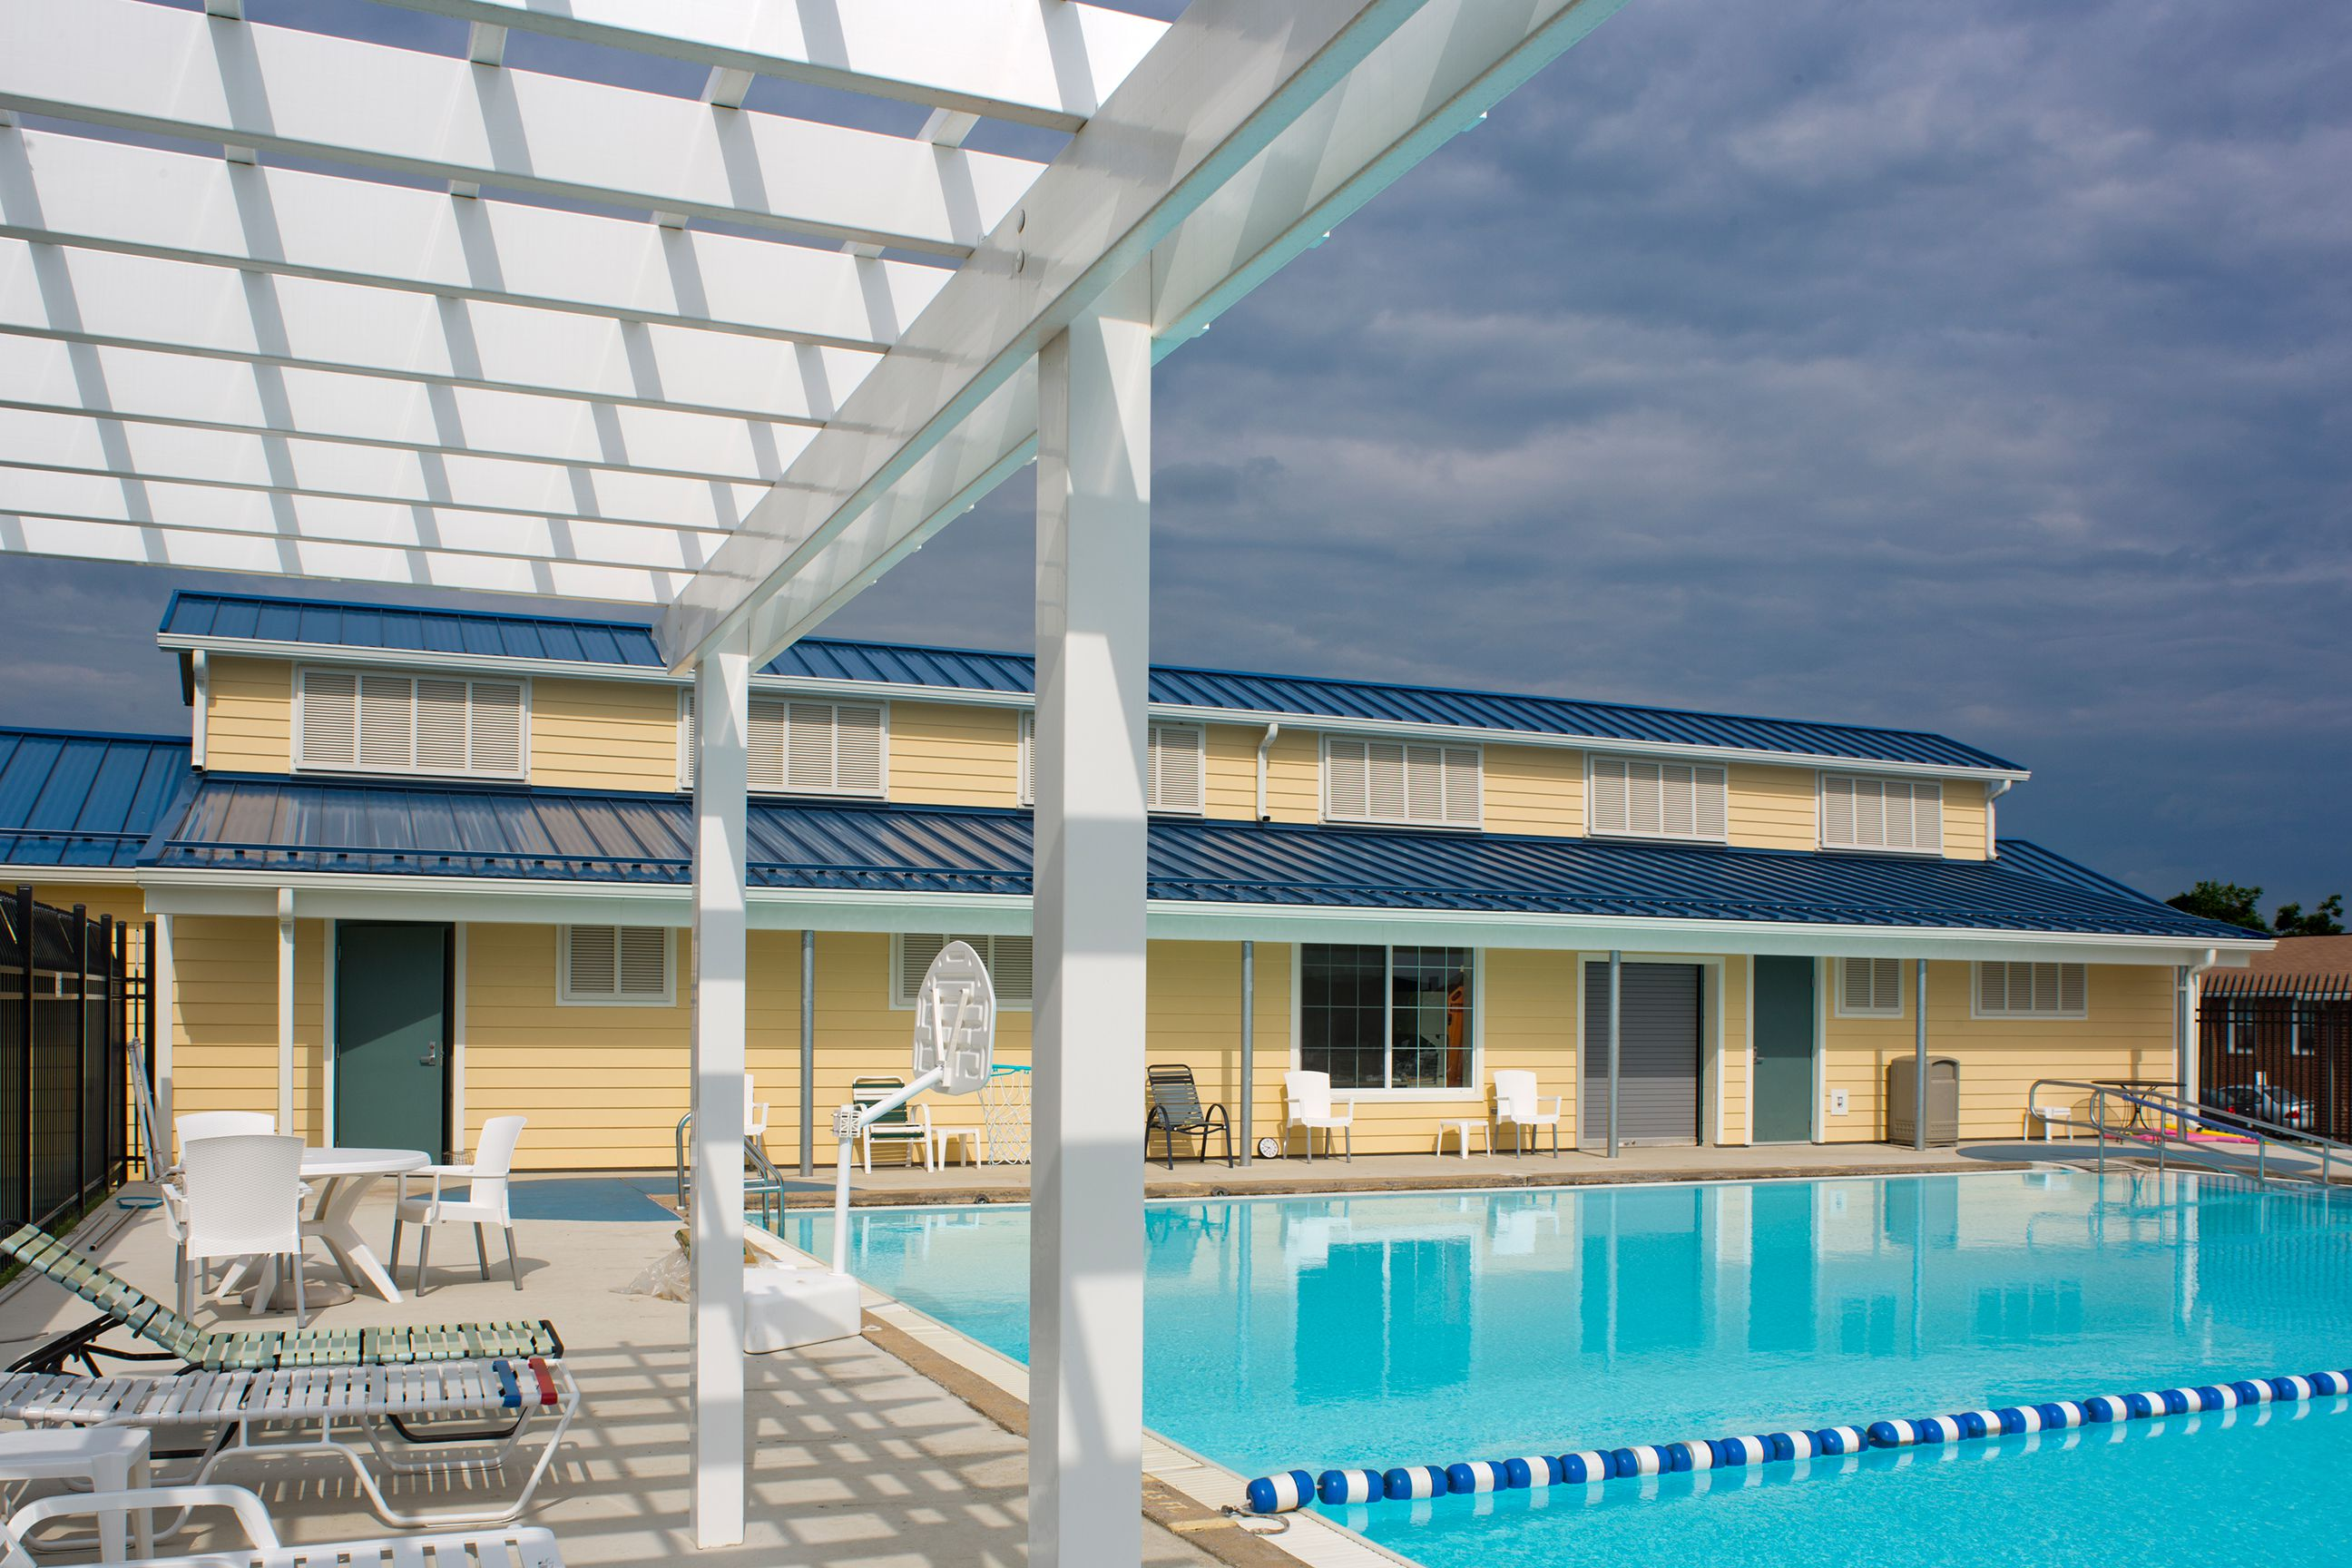 Vamc Martinsburg Pool House Saaarchitects